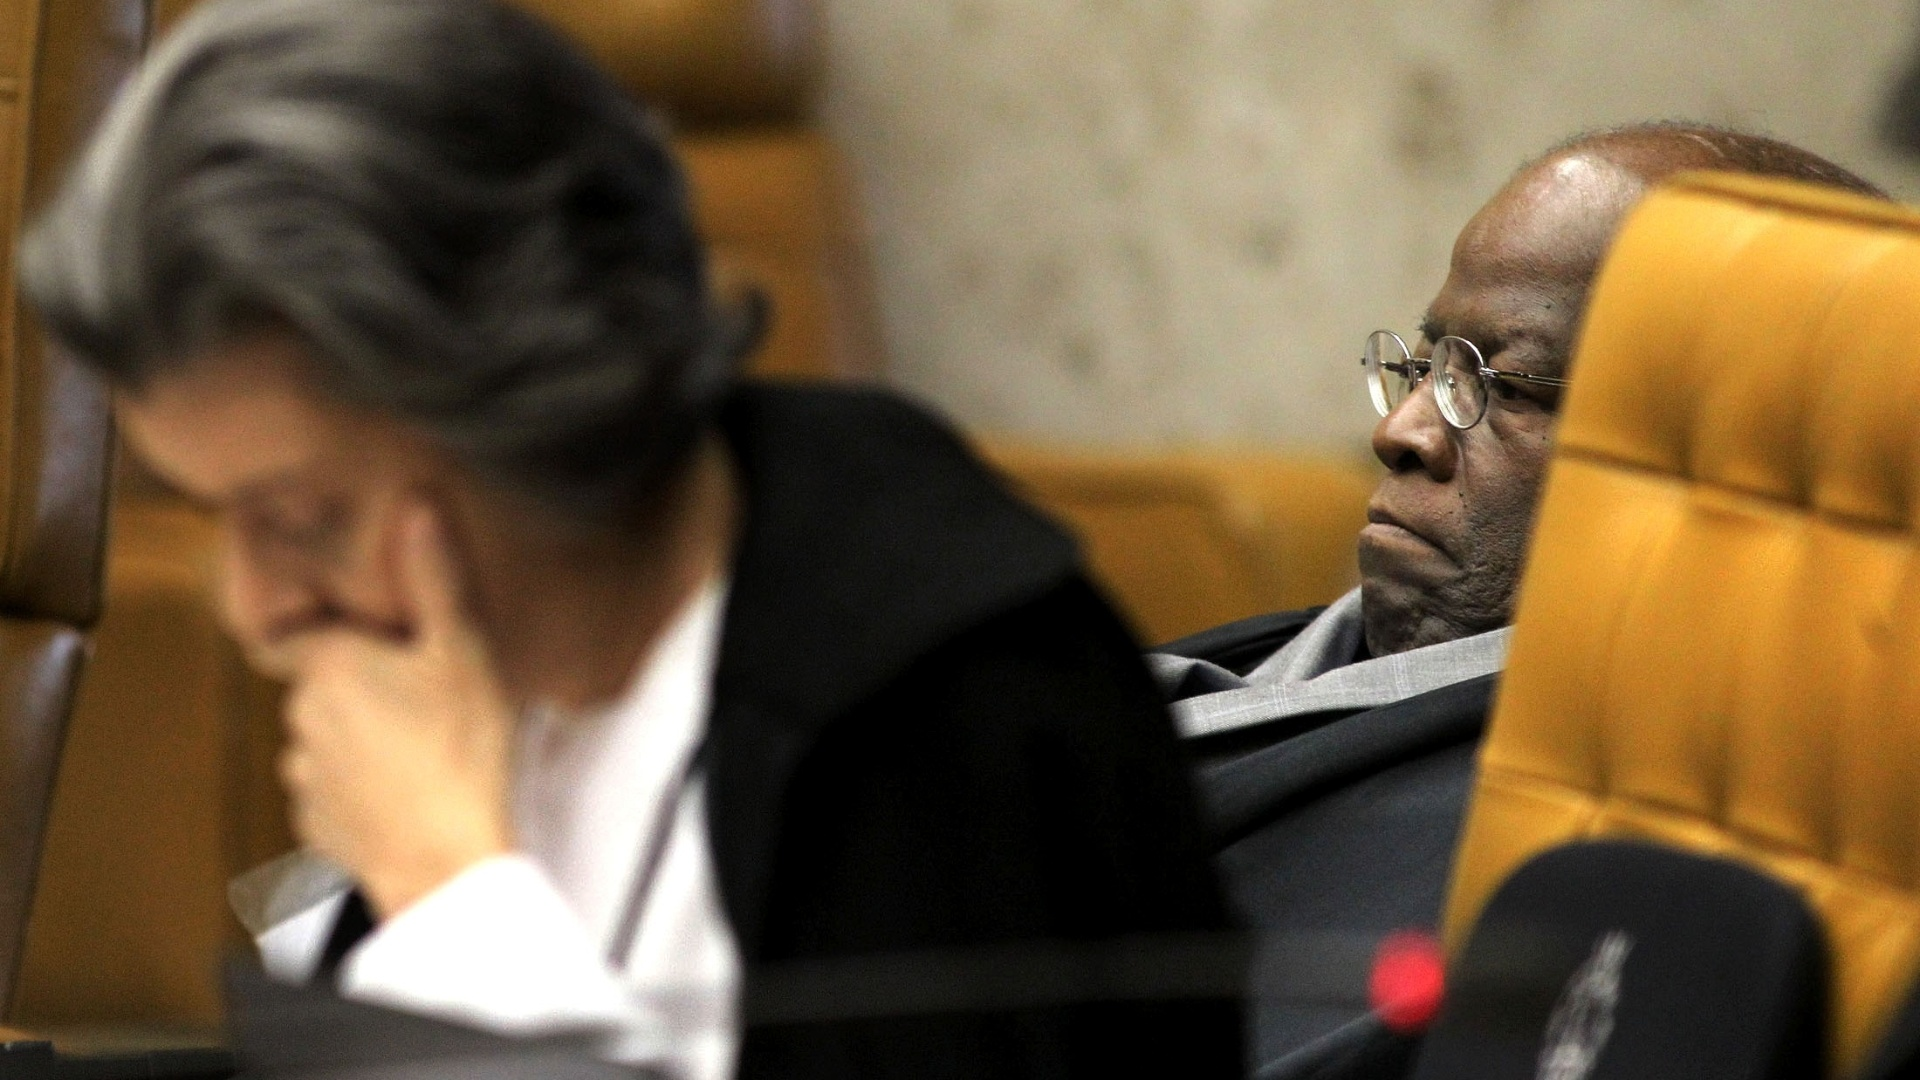 9.out.2012 - Ministro Joaquim Barbosa e Carmen Lúcia no plenário do Supremo Tribunal Federal (STF) durante julgamento do mensalão